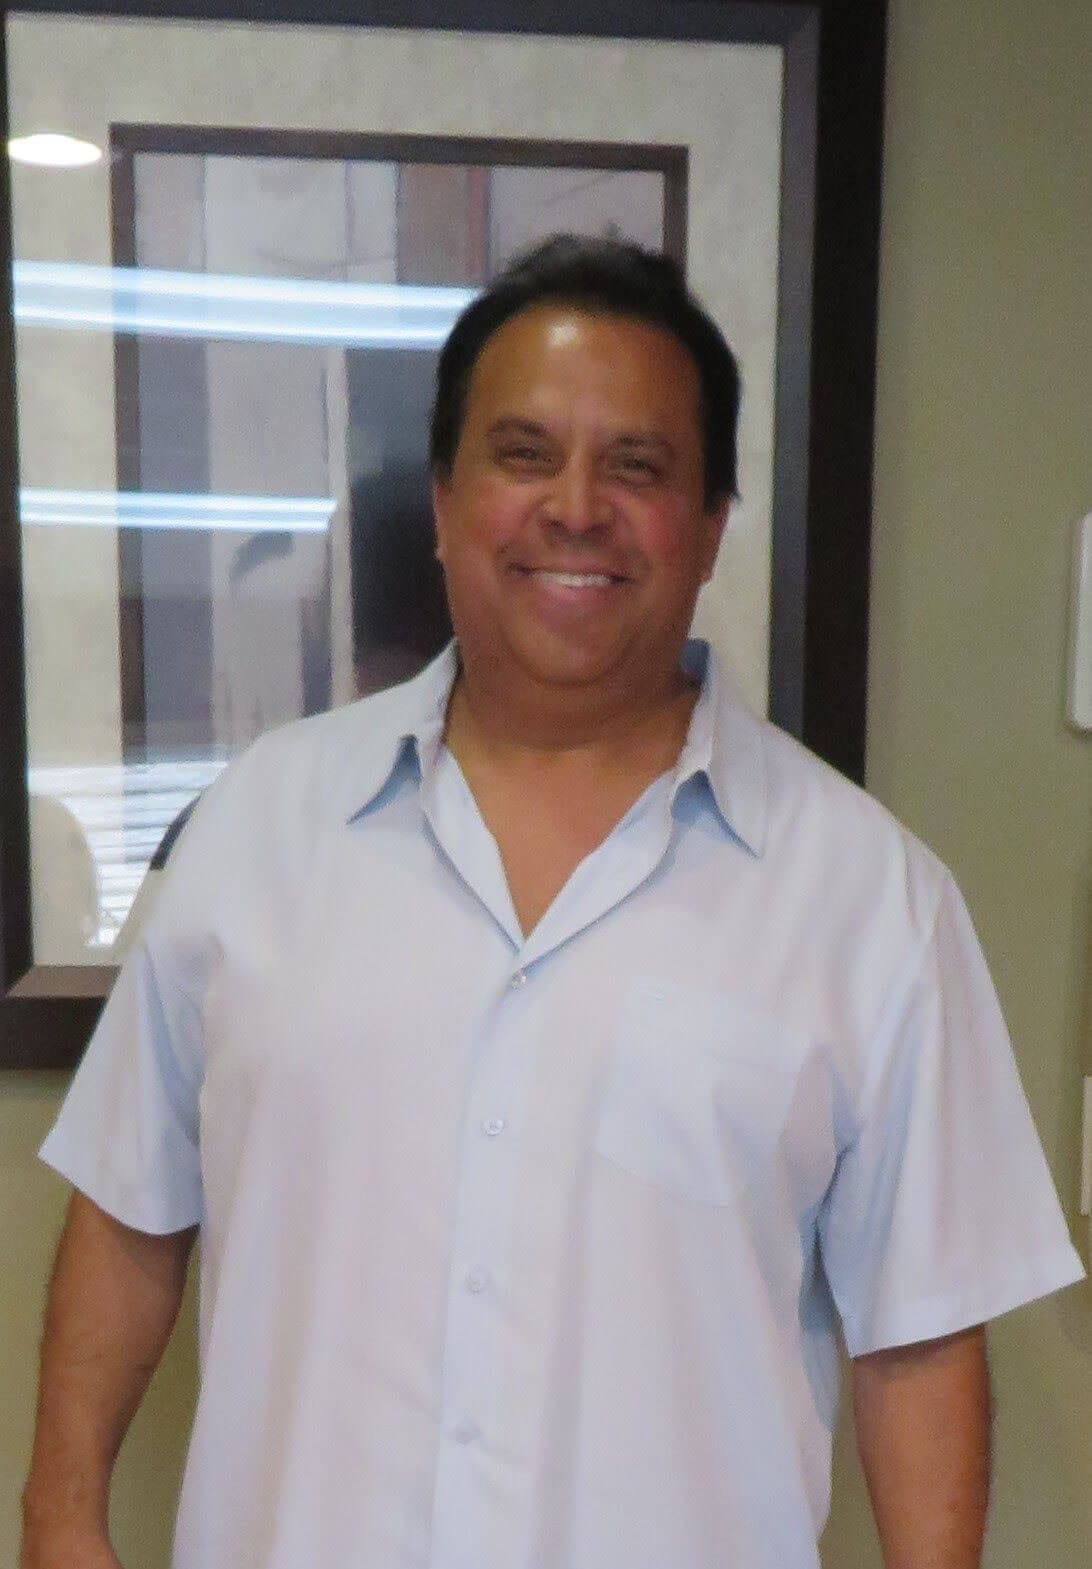 ≪H1 Class=&Quot;Hide_09&Quot;≫Bariatric Surgery ≪Br≫Before And After - Jamie P.≪/H1≫   Success_Storie   The Weight Loss Surgery Center Of Los Angeles   Dr. David Davtyan